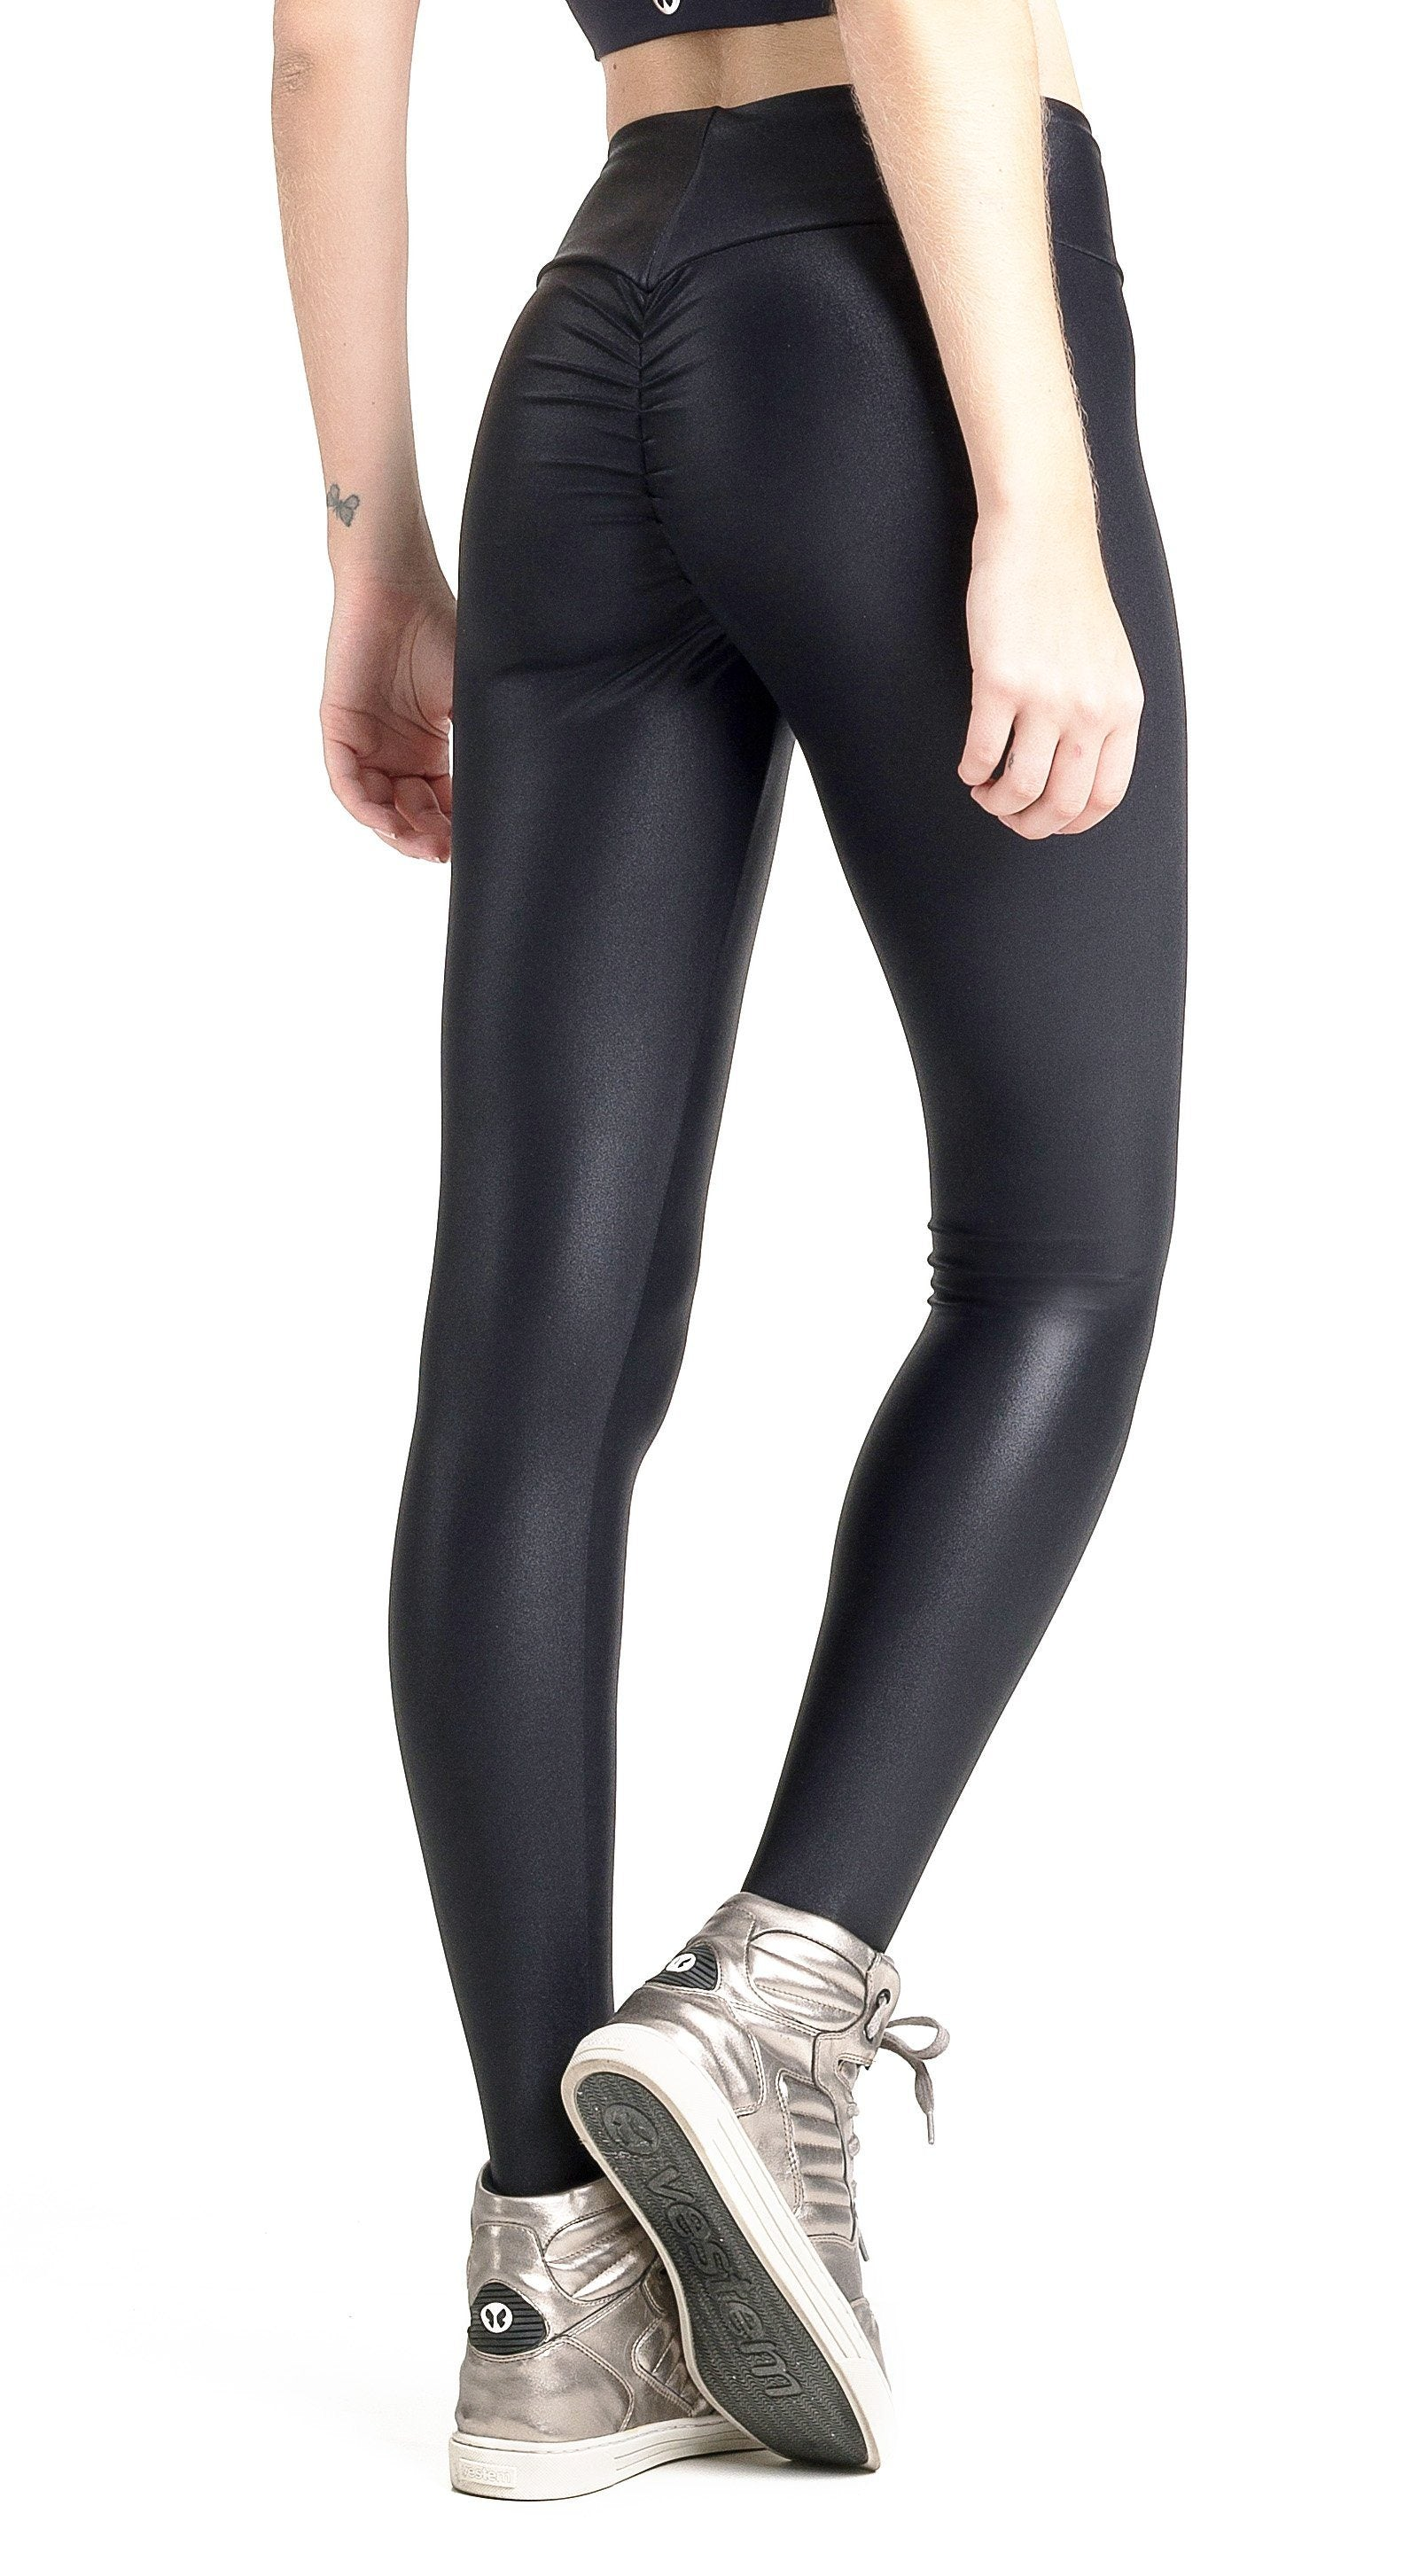 f6d0e78ab40a2 Brazilian Workout Legging | Ruched Booty Up Shiny Black | Top Rio Shop